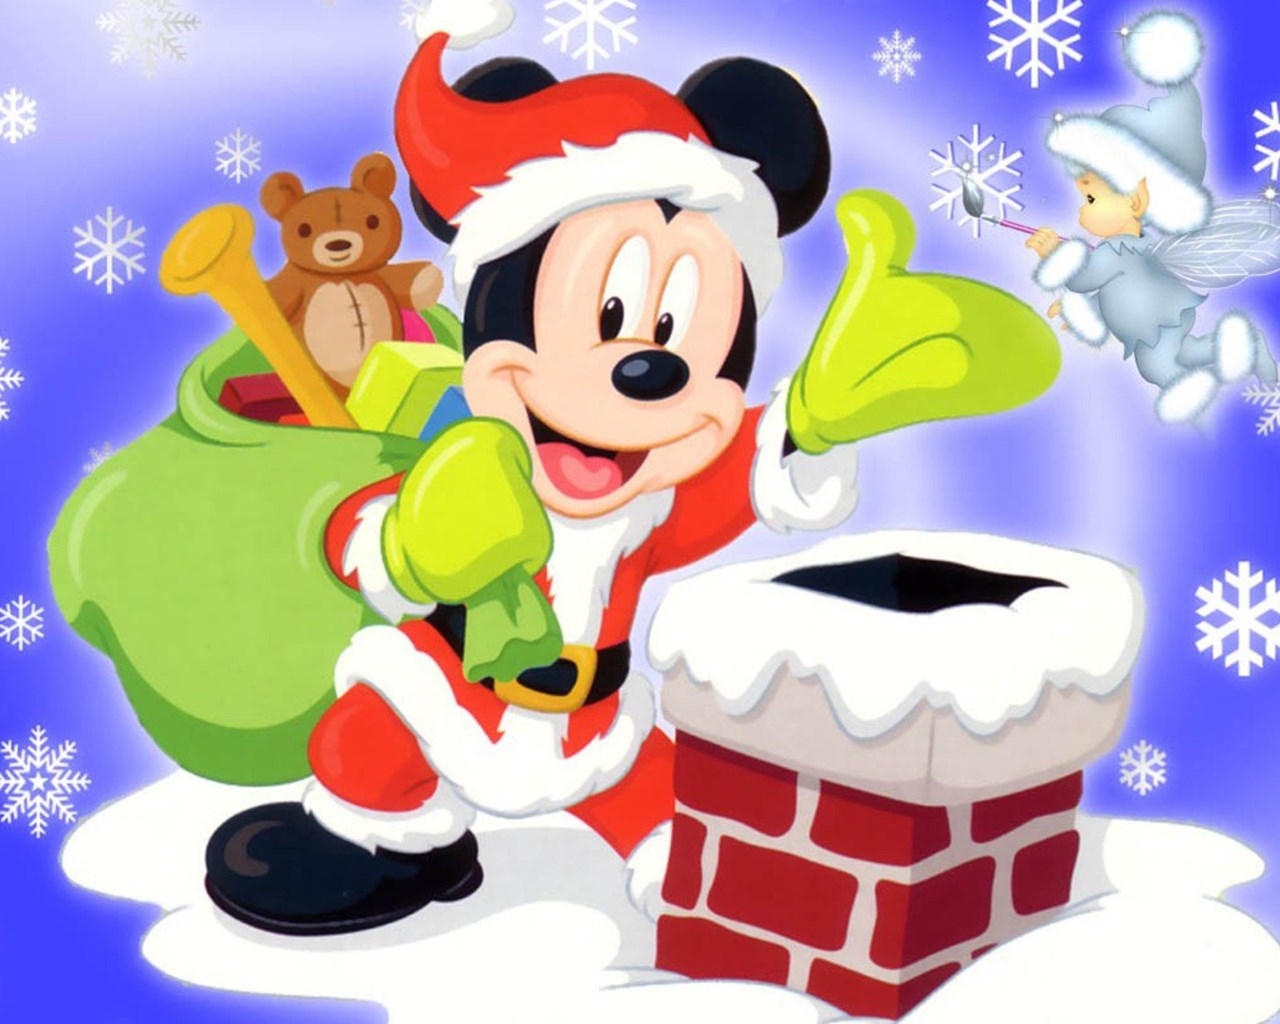 Disney Christmas Wallpapers Free Download For Mobile Desktop Background